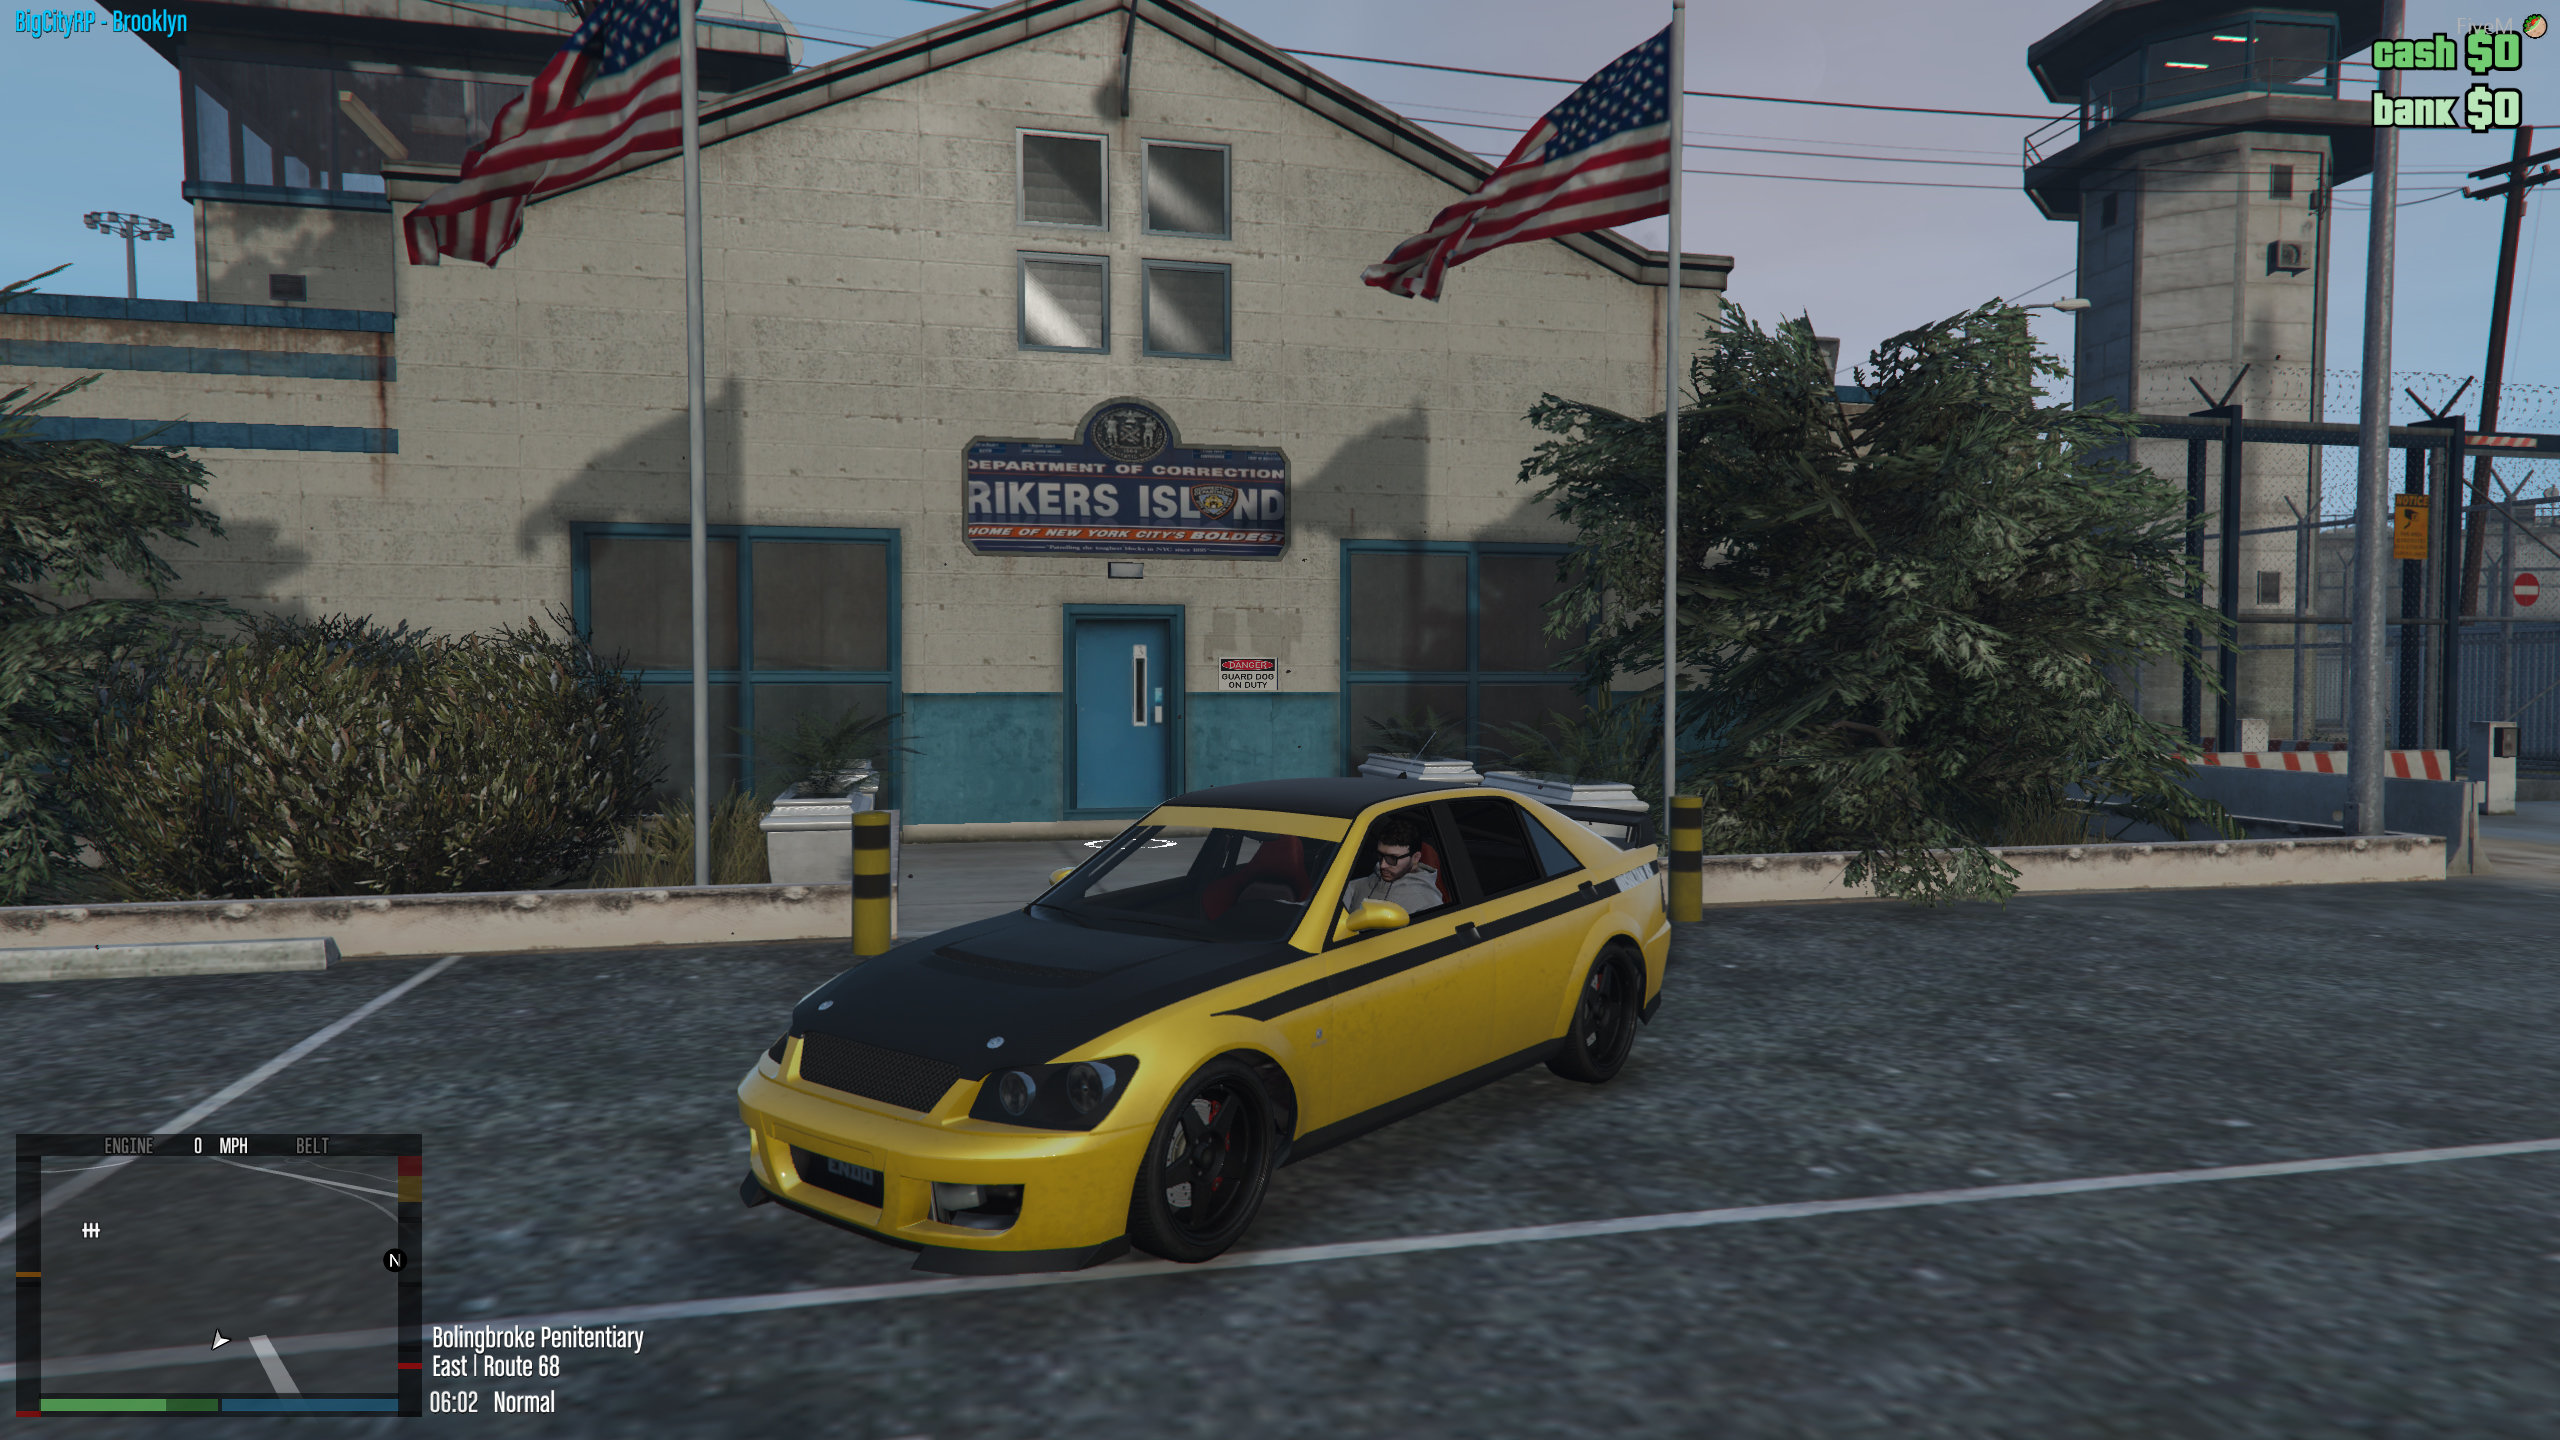 selling sultan open to offers auto sales big city roleplay community bigcityrp